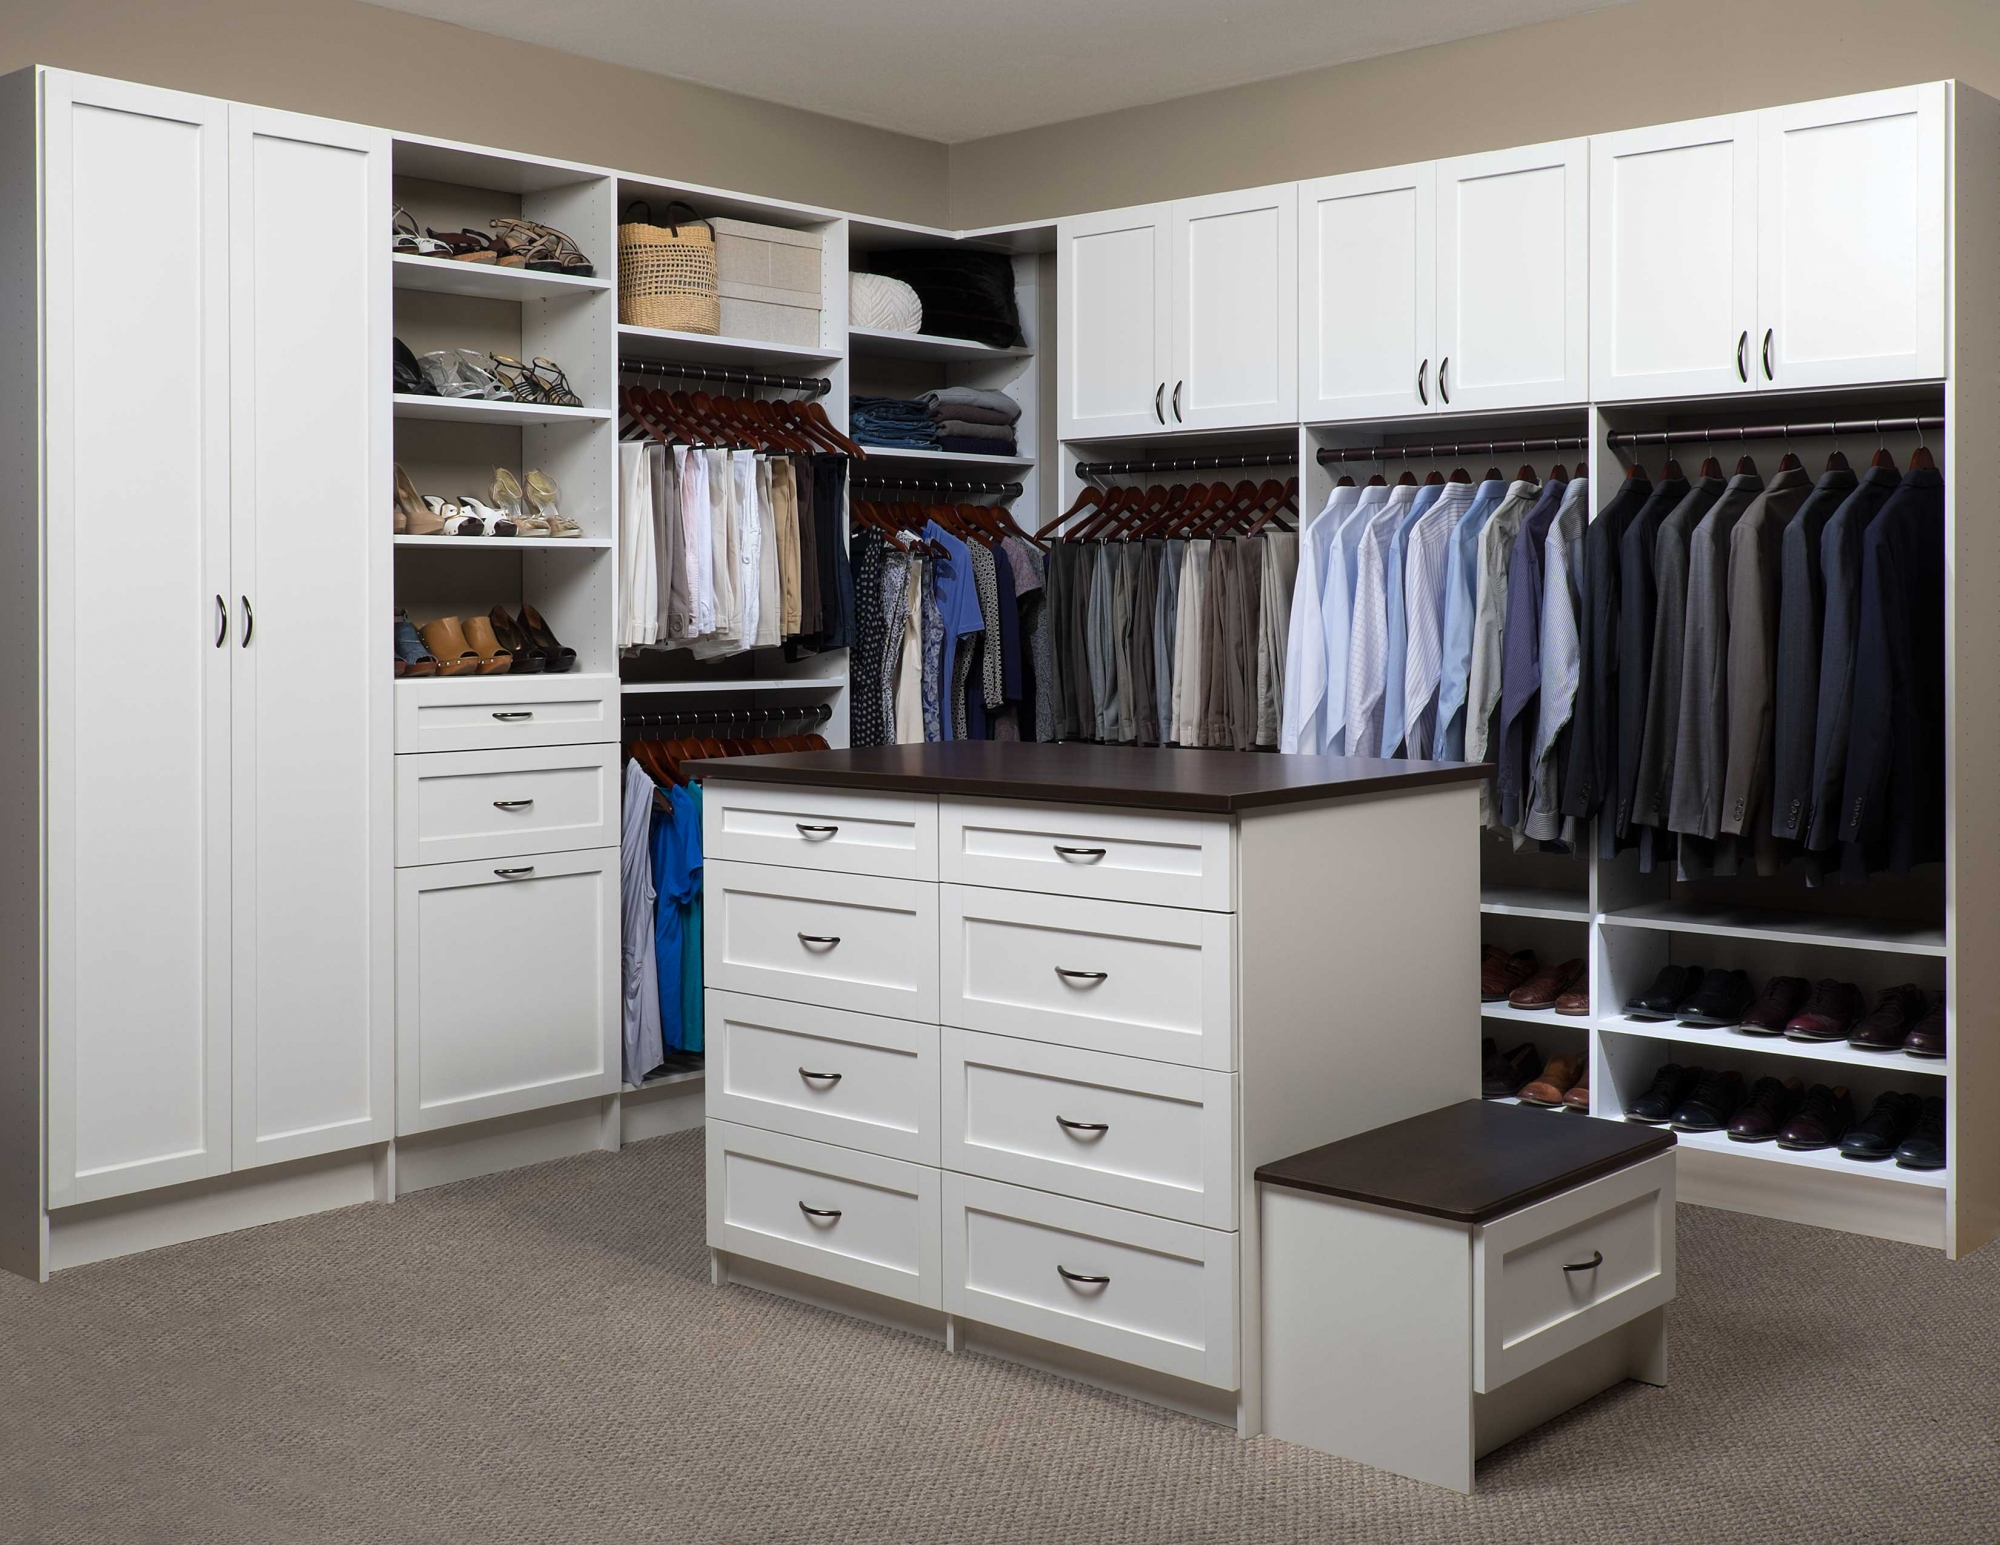 Lovely Our Dedication To Customer Service Begins With A No Cost Consultation;  During Which, We Will Show You Many Options For Increasing The Space In  Your Closets.